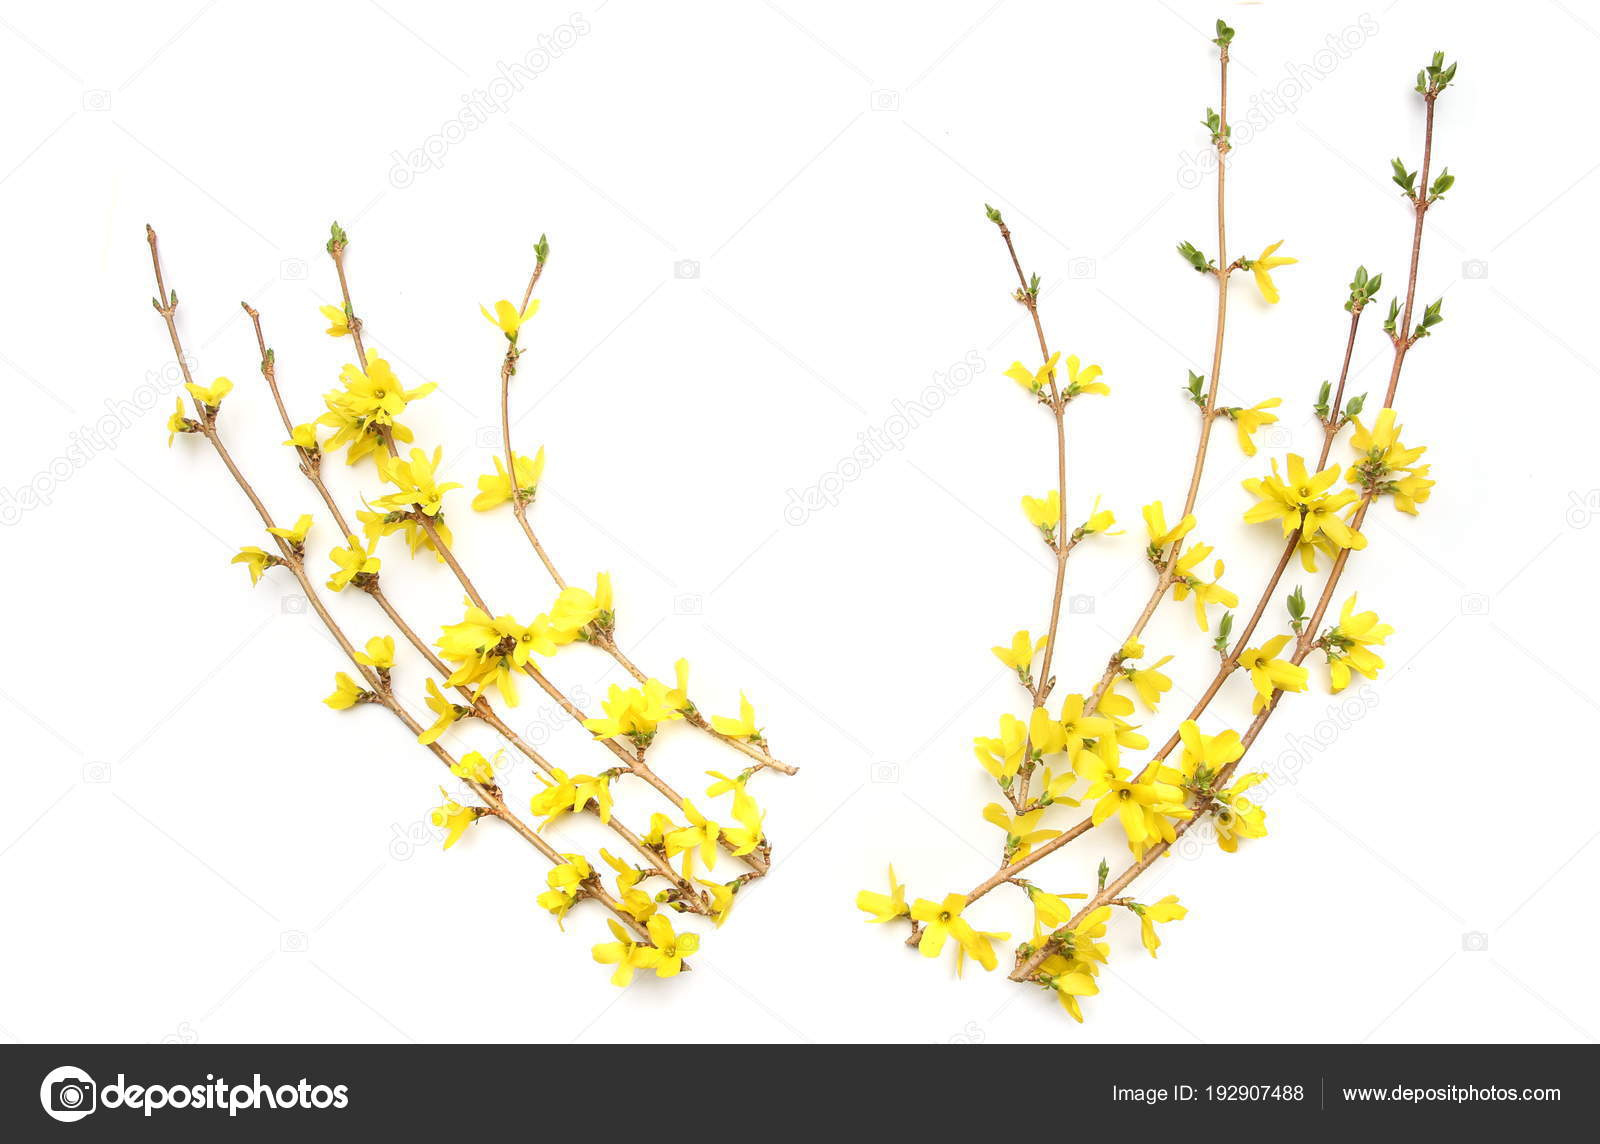 Forsythia Branches Yellow Flowers Isolated White Background Spring